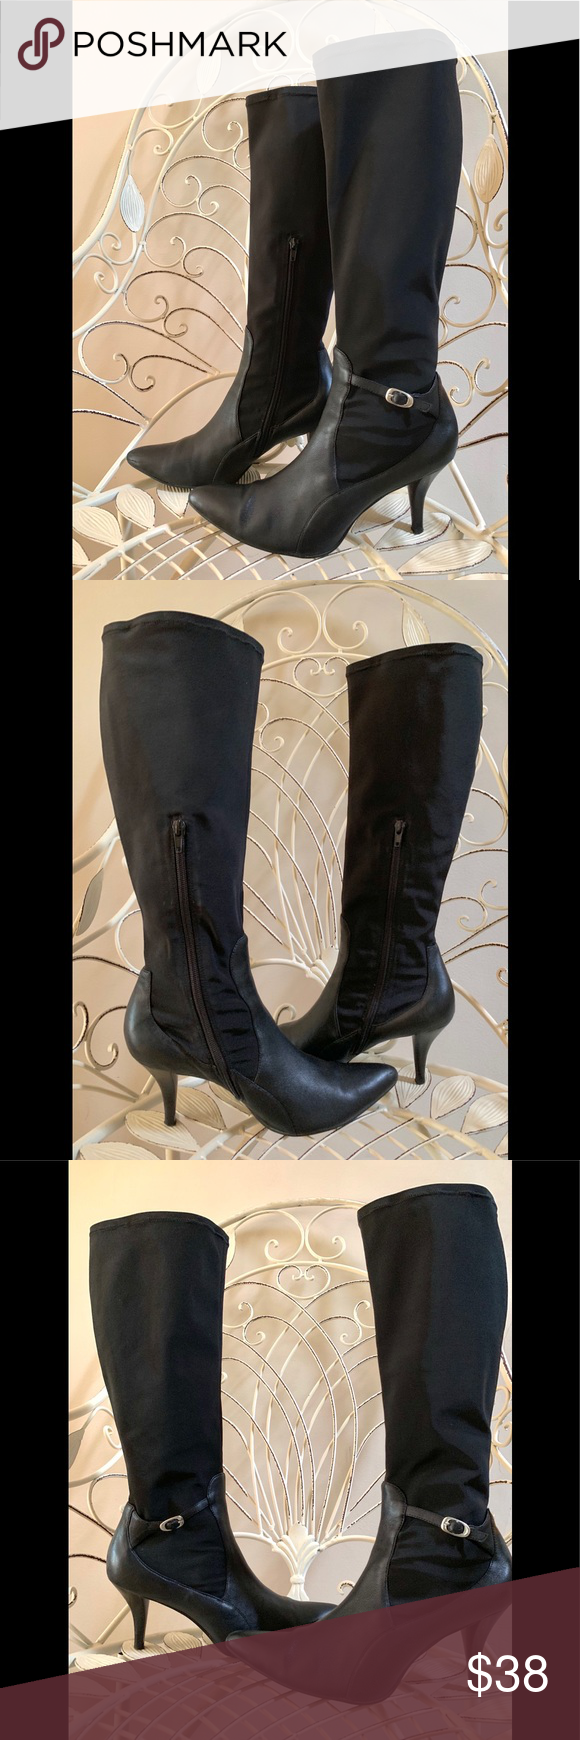 NINE WEST Black Leather Stiletto Hug Me Boots Boots